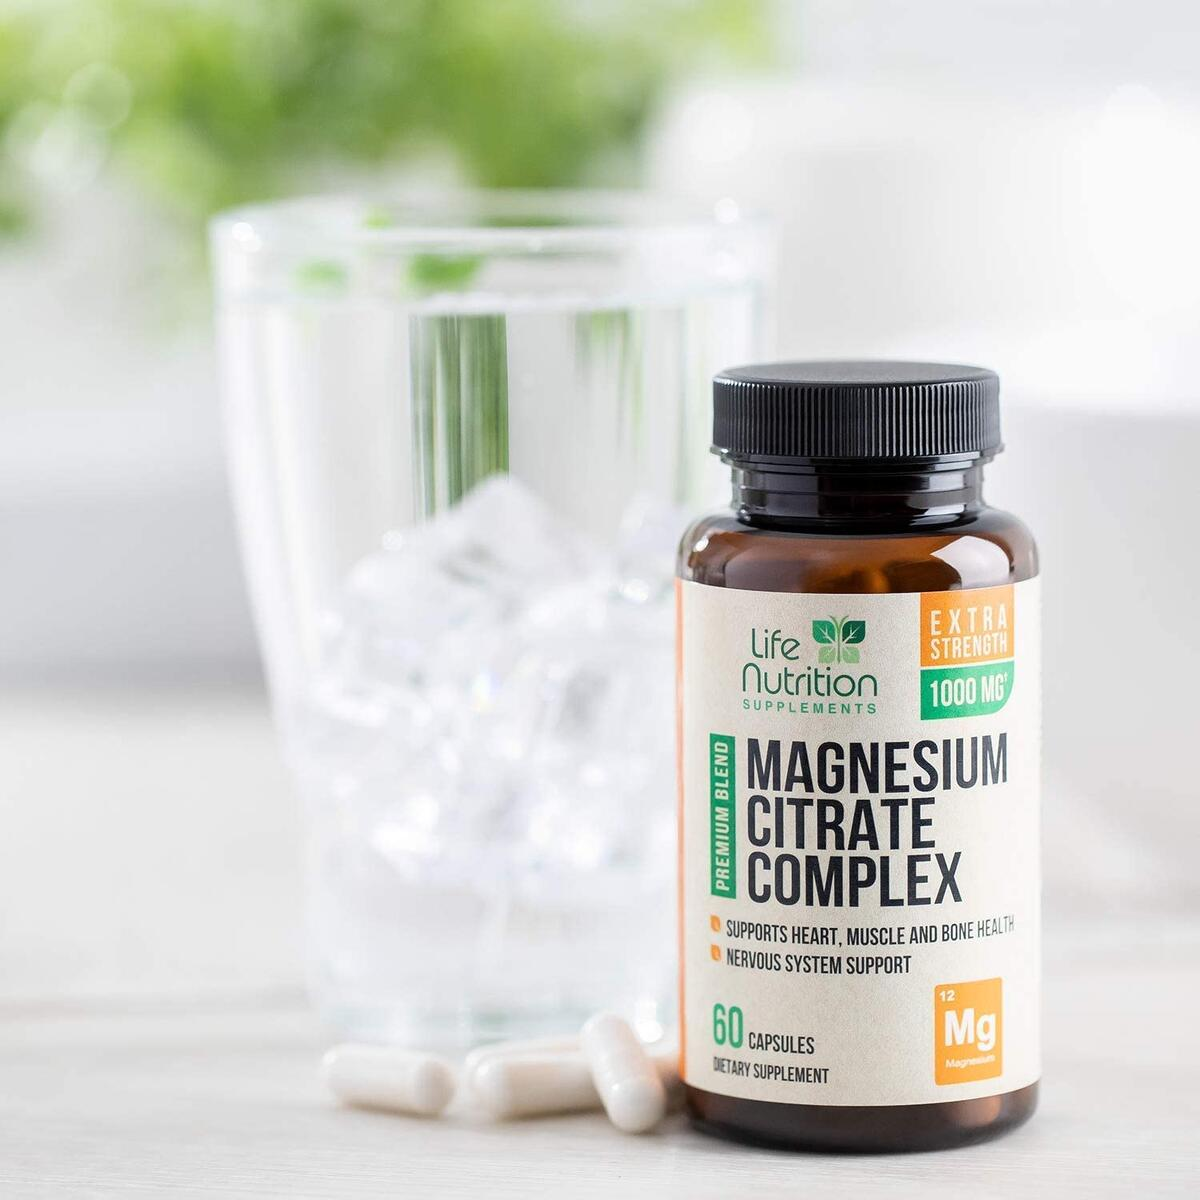 Magnesium Citrate Capsules Highest Potency 1000mg - 100% Chelated for High Absorption - Made in USA - Best Vegan Stress Relief, Sleep, Muscle Relaxation, Bone, Joint, Heart Supplement - 60 Capsules